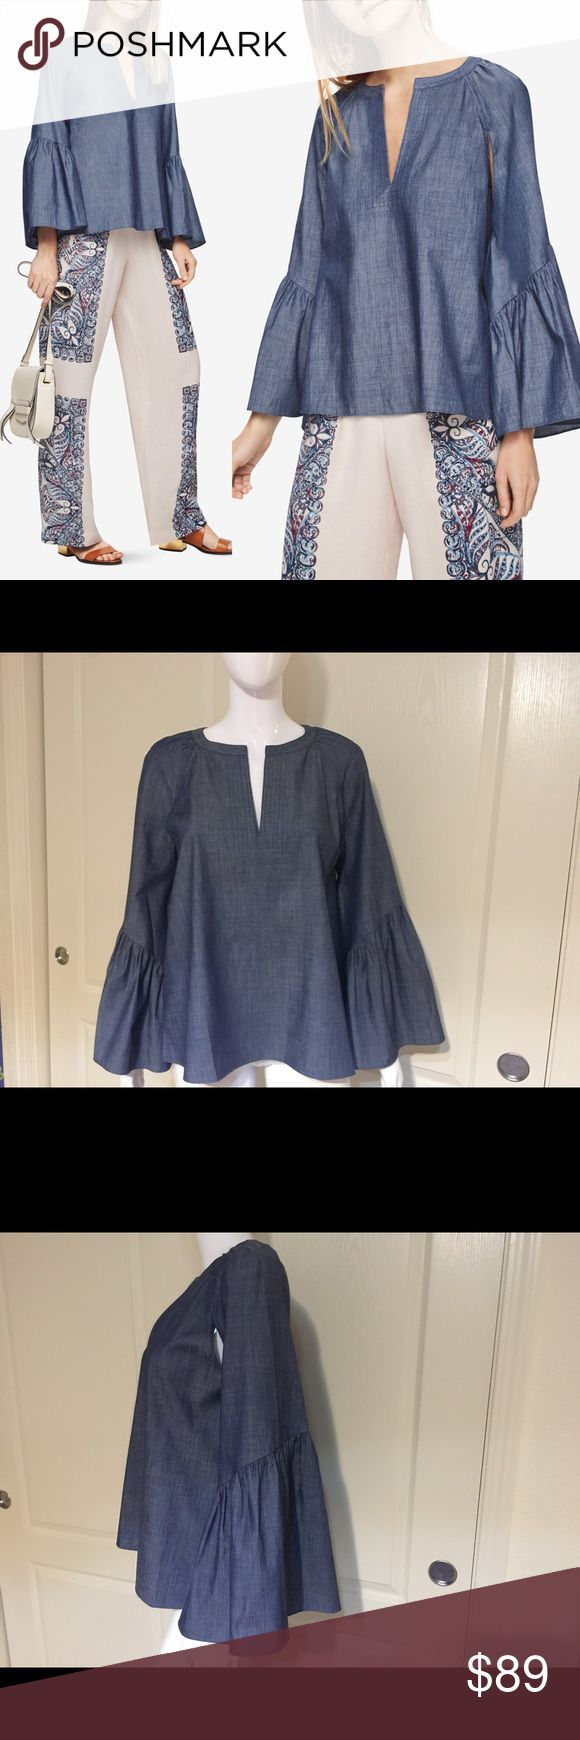 "BCBG max azria Suzie chambray Top bell sleeve new Condition: brand new without tags, never worn. 2017 s/s collection. SIZE TAG MAY BE SNAPPED.                                                                   This pullover top in chambray twill shirting exudes relaxed sophistication and bold styling with long, flared sleeves and a deep-V neckline. Pullover Chambray twill shirting   XS=2-4, S=6, M=8-10, L=12. Easy fit Model is approximately 5'9"" (175cm) and wearing an XS Measurements…"